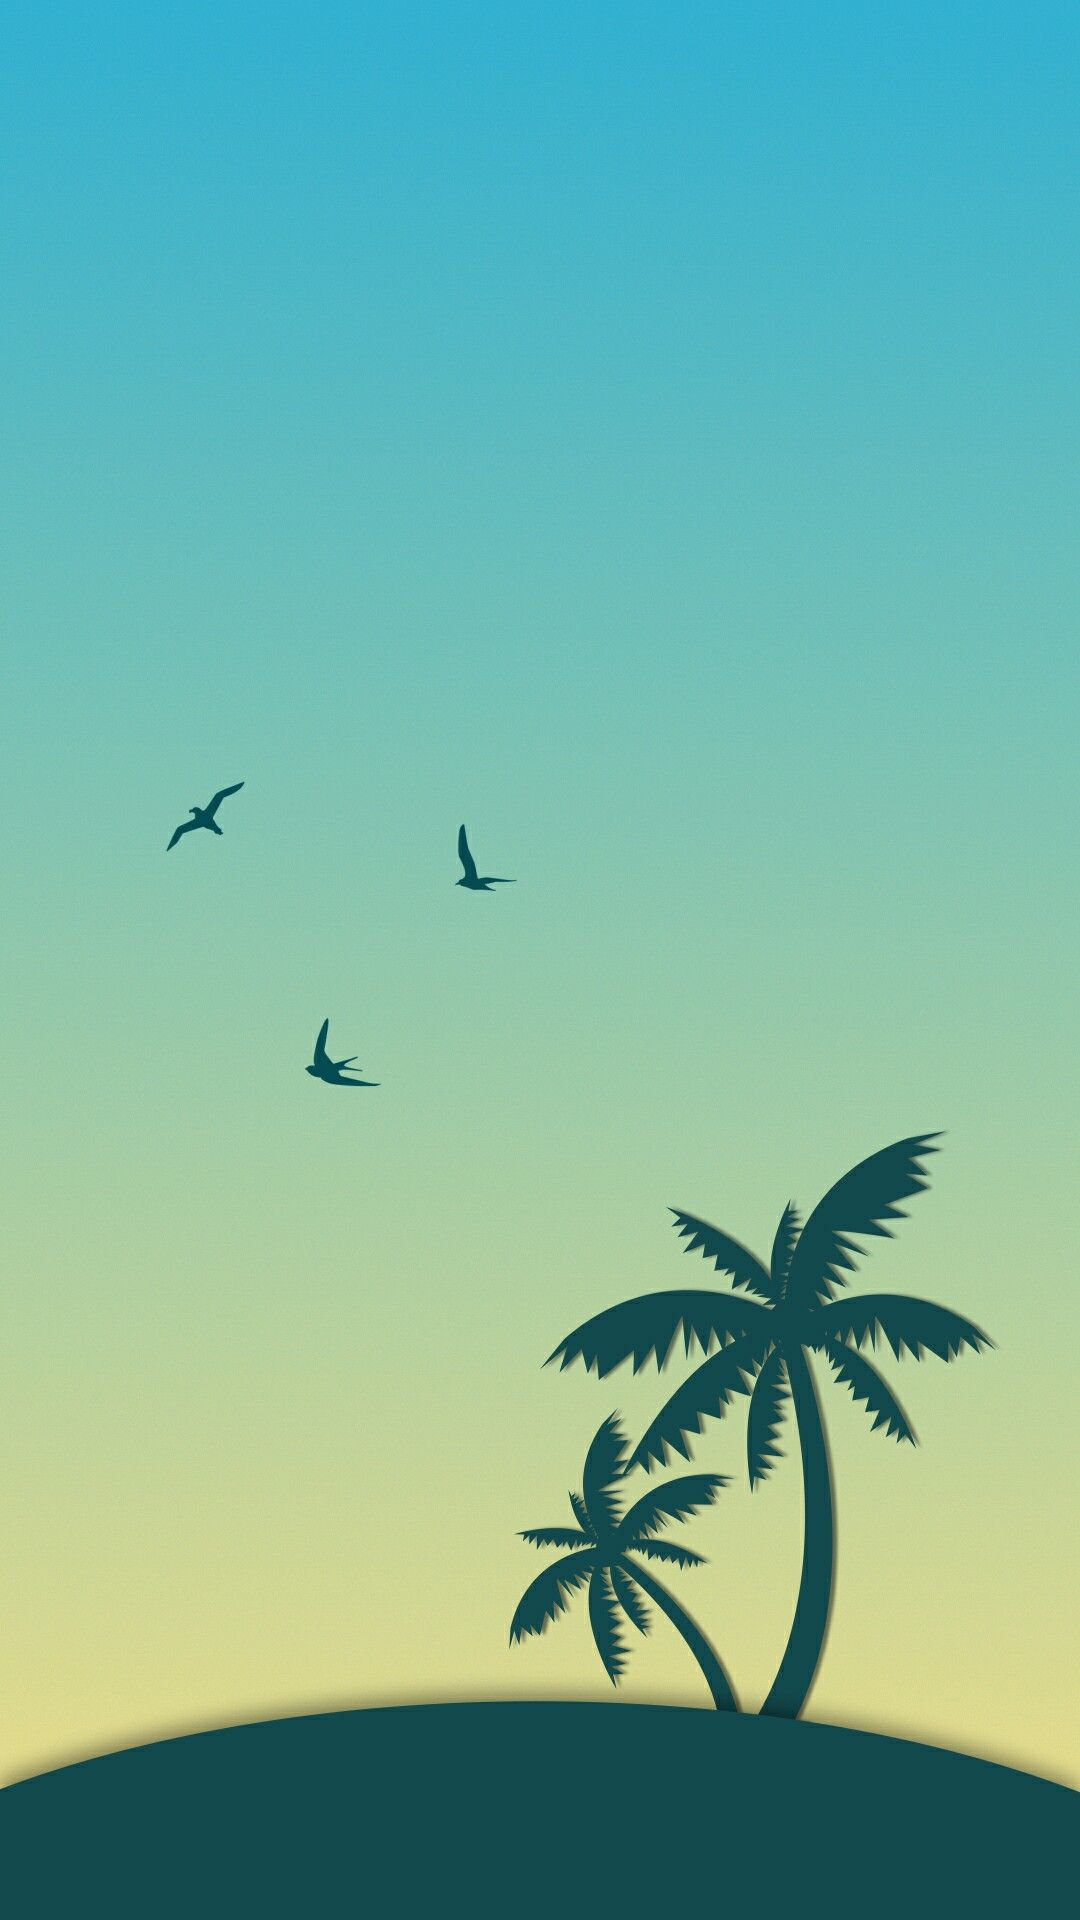 flat illustration flat design palm trees iphone wallpapers summer wallpaper wallpaper s art interiors artwork comment please